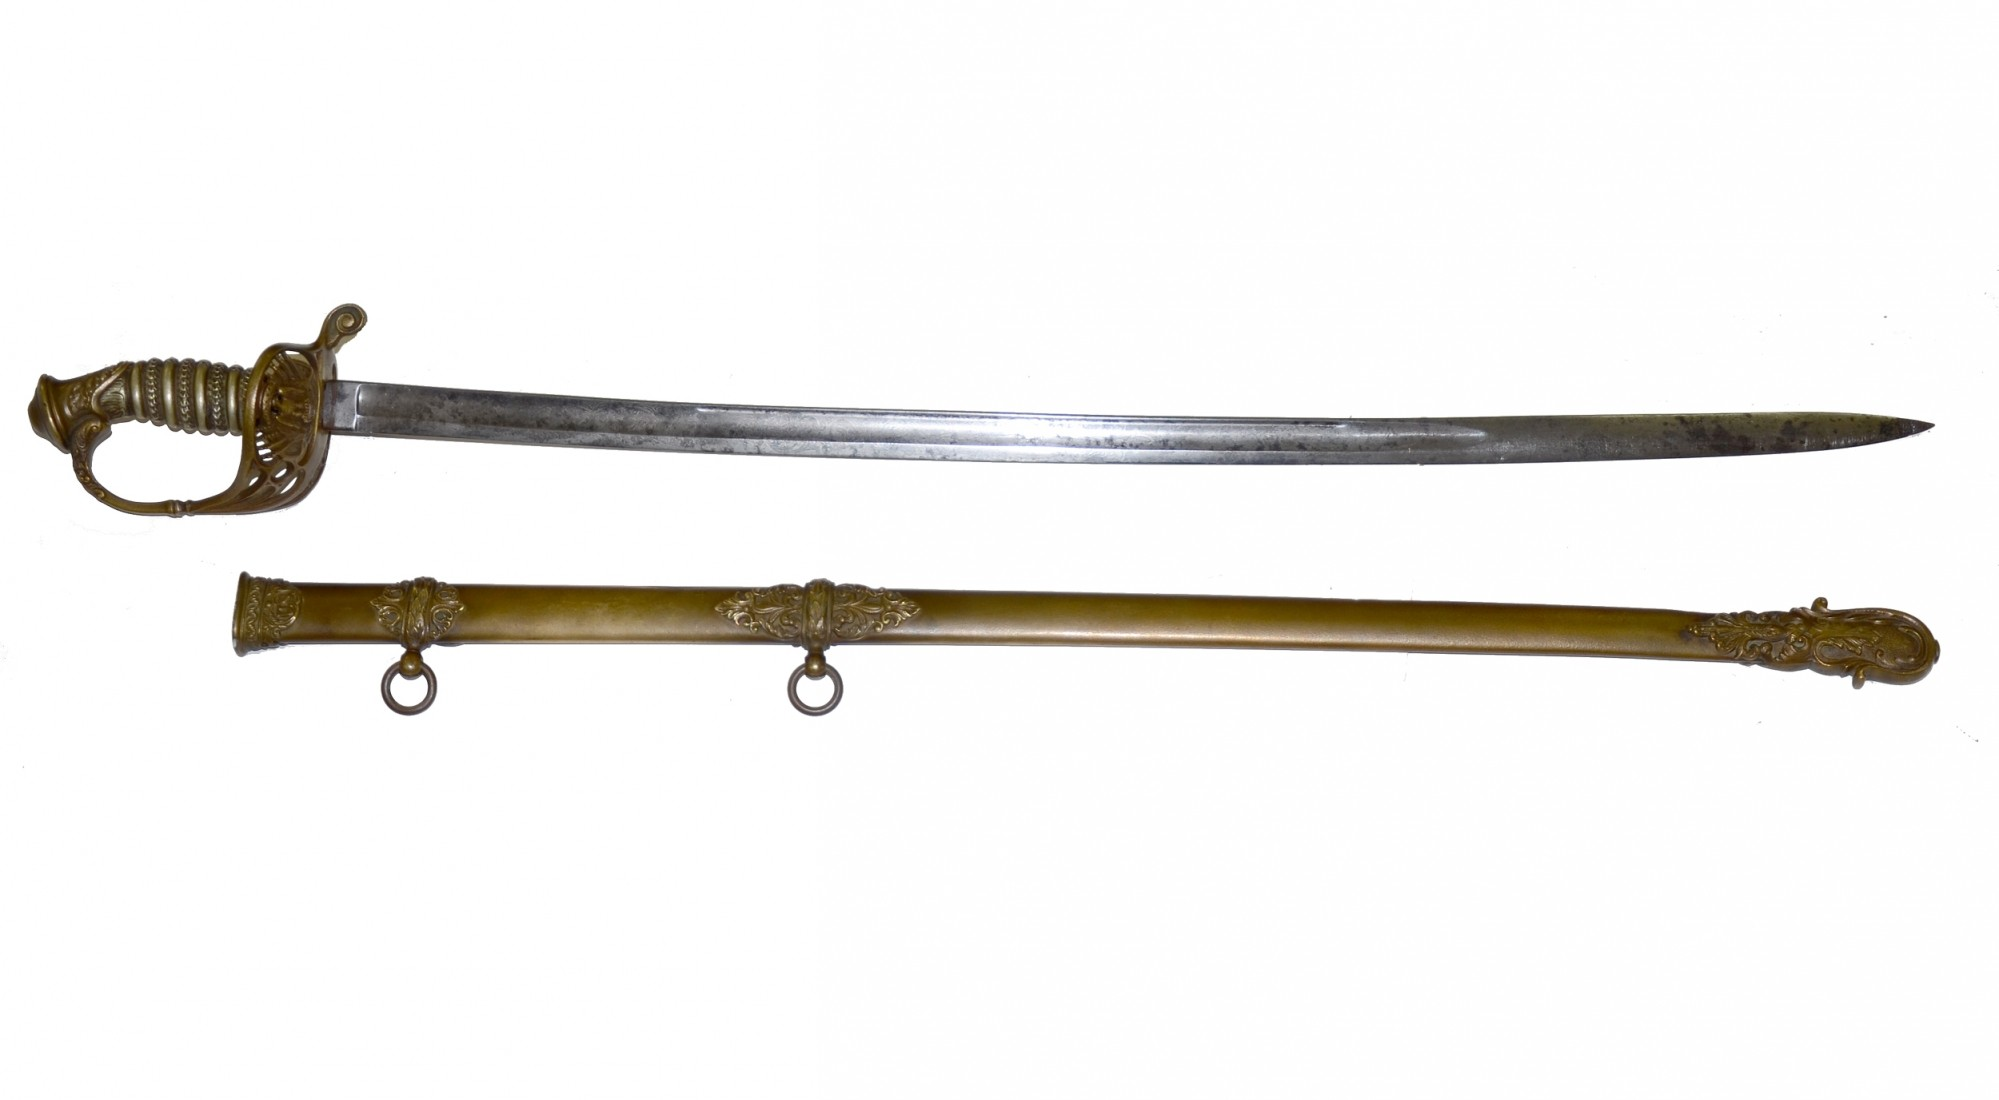 FRENCH IMPORT PRESENTATION GRADE SWORD ID'D TO 18TH KENTUCKY LIEUTENANT